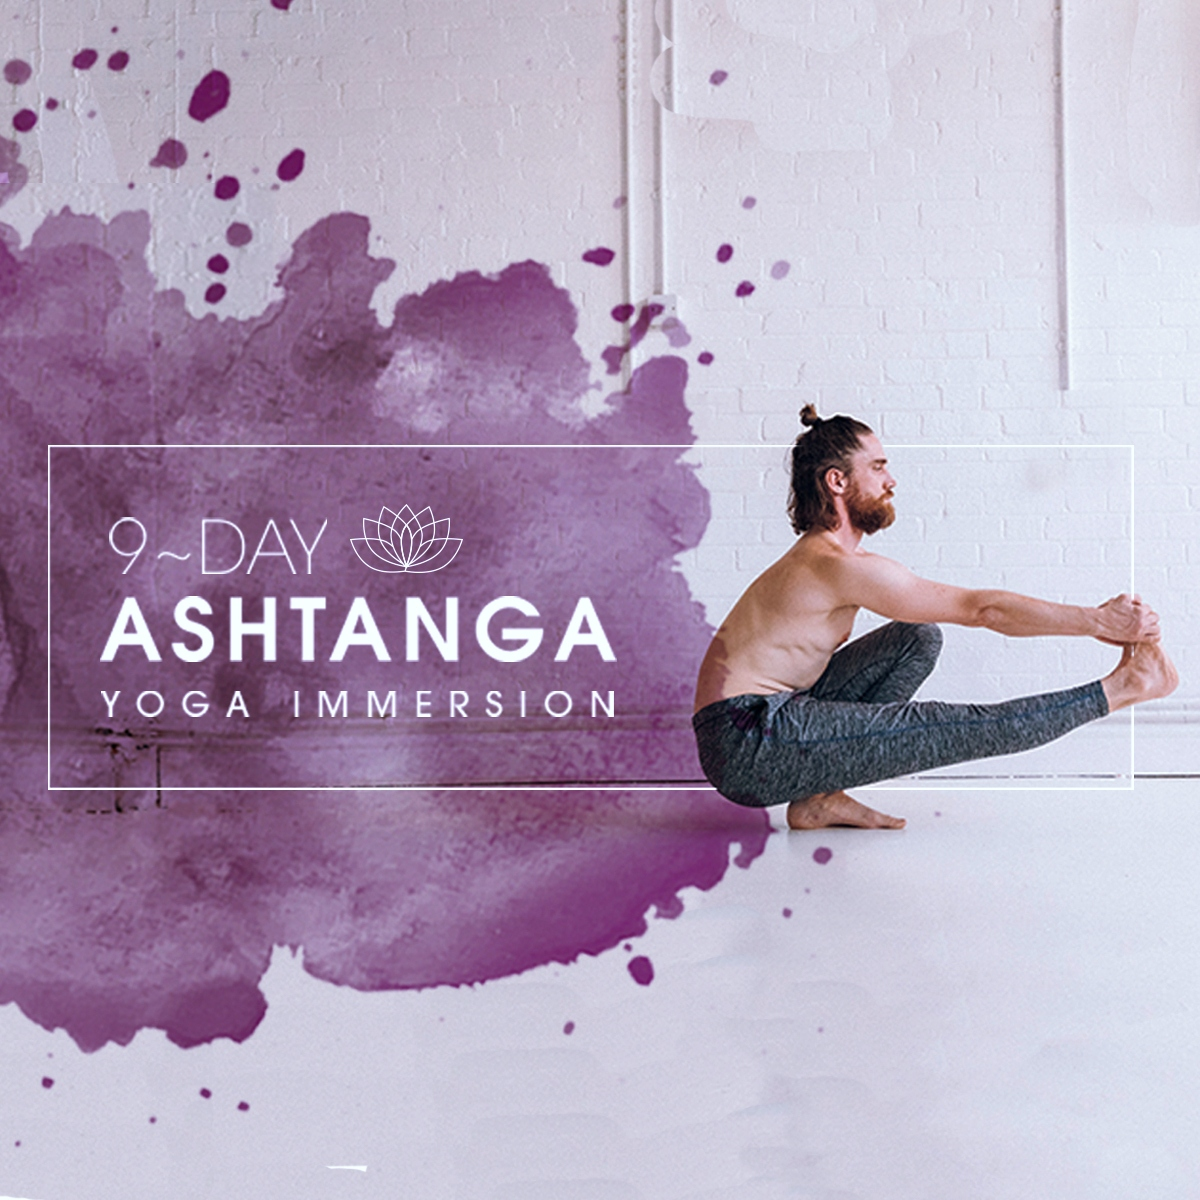 9-Day Ashtanga Yoga Immersion